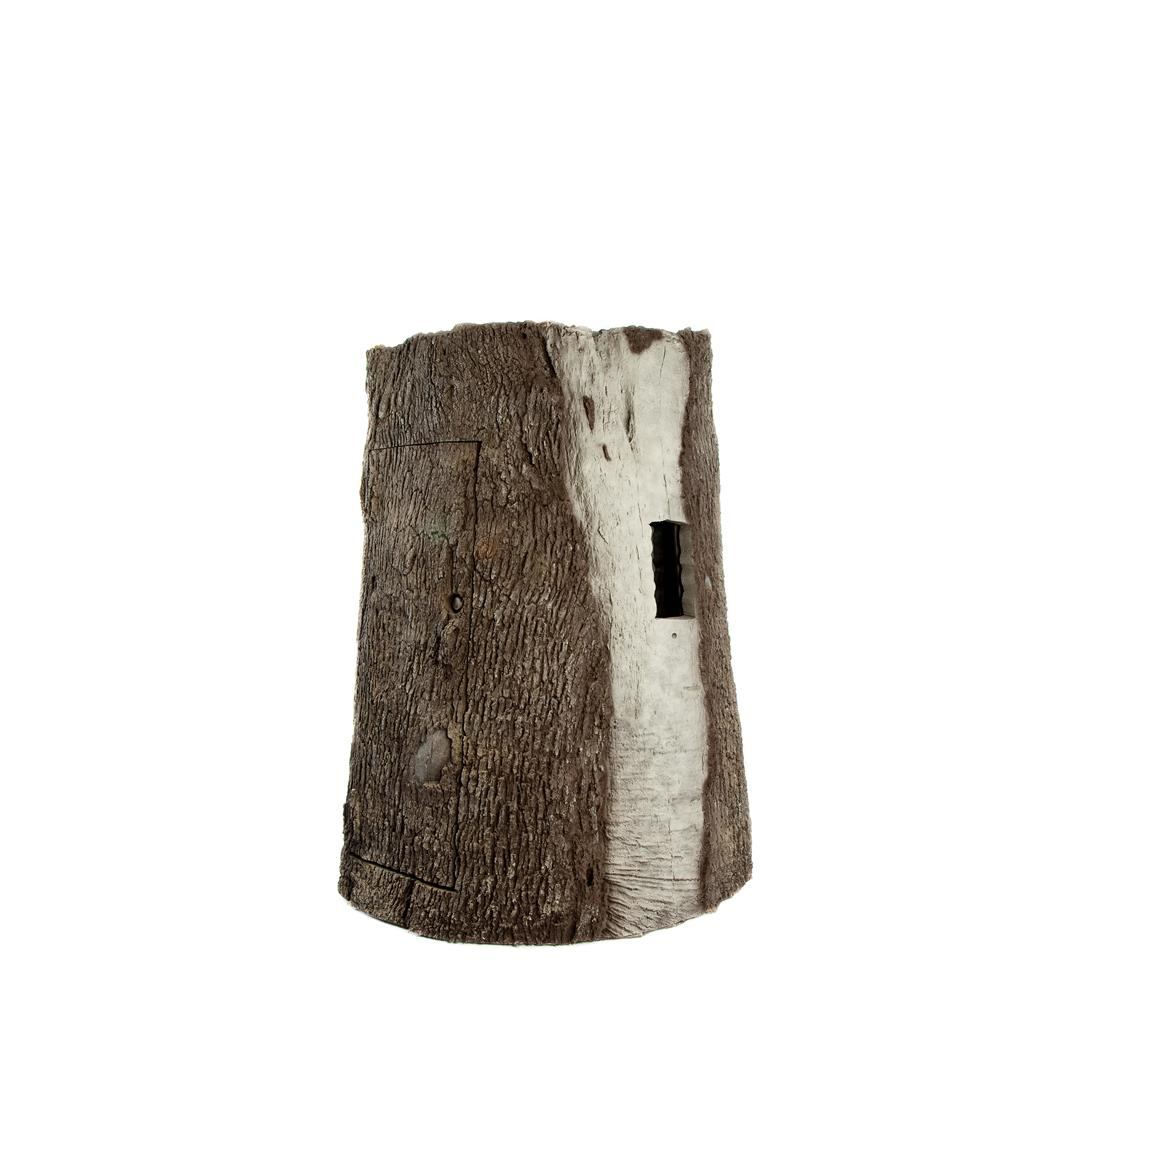 Realistic bark texture with no right angles or straight lines is UV resistant